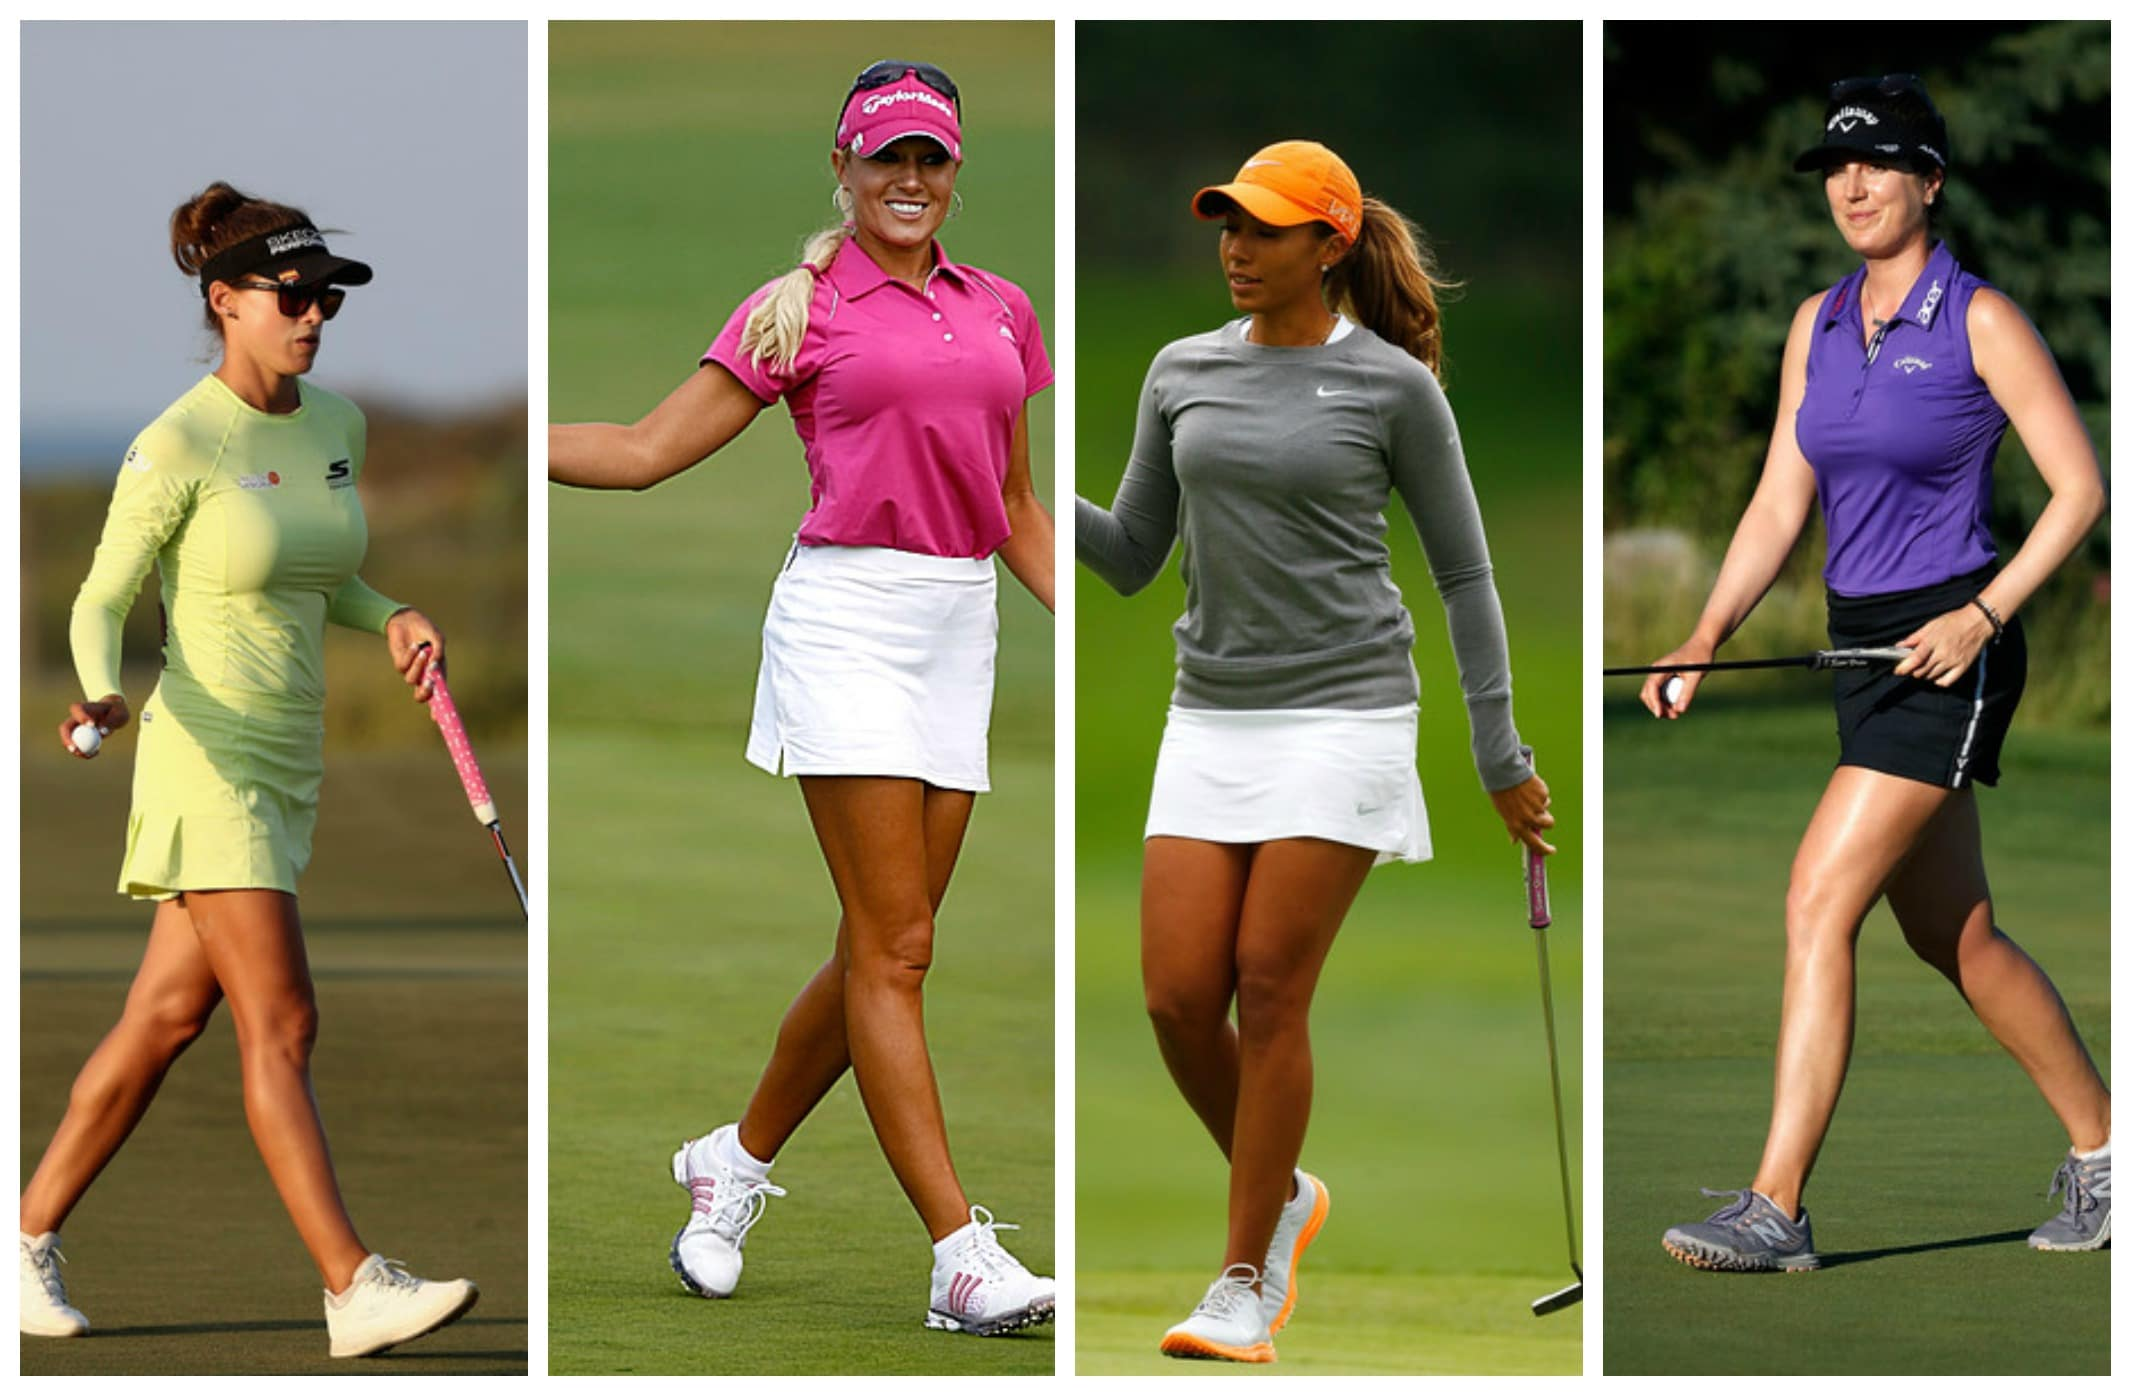 The Top 10 Hottest Women On The LPGA Tour